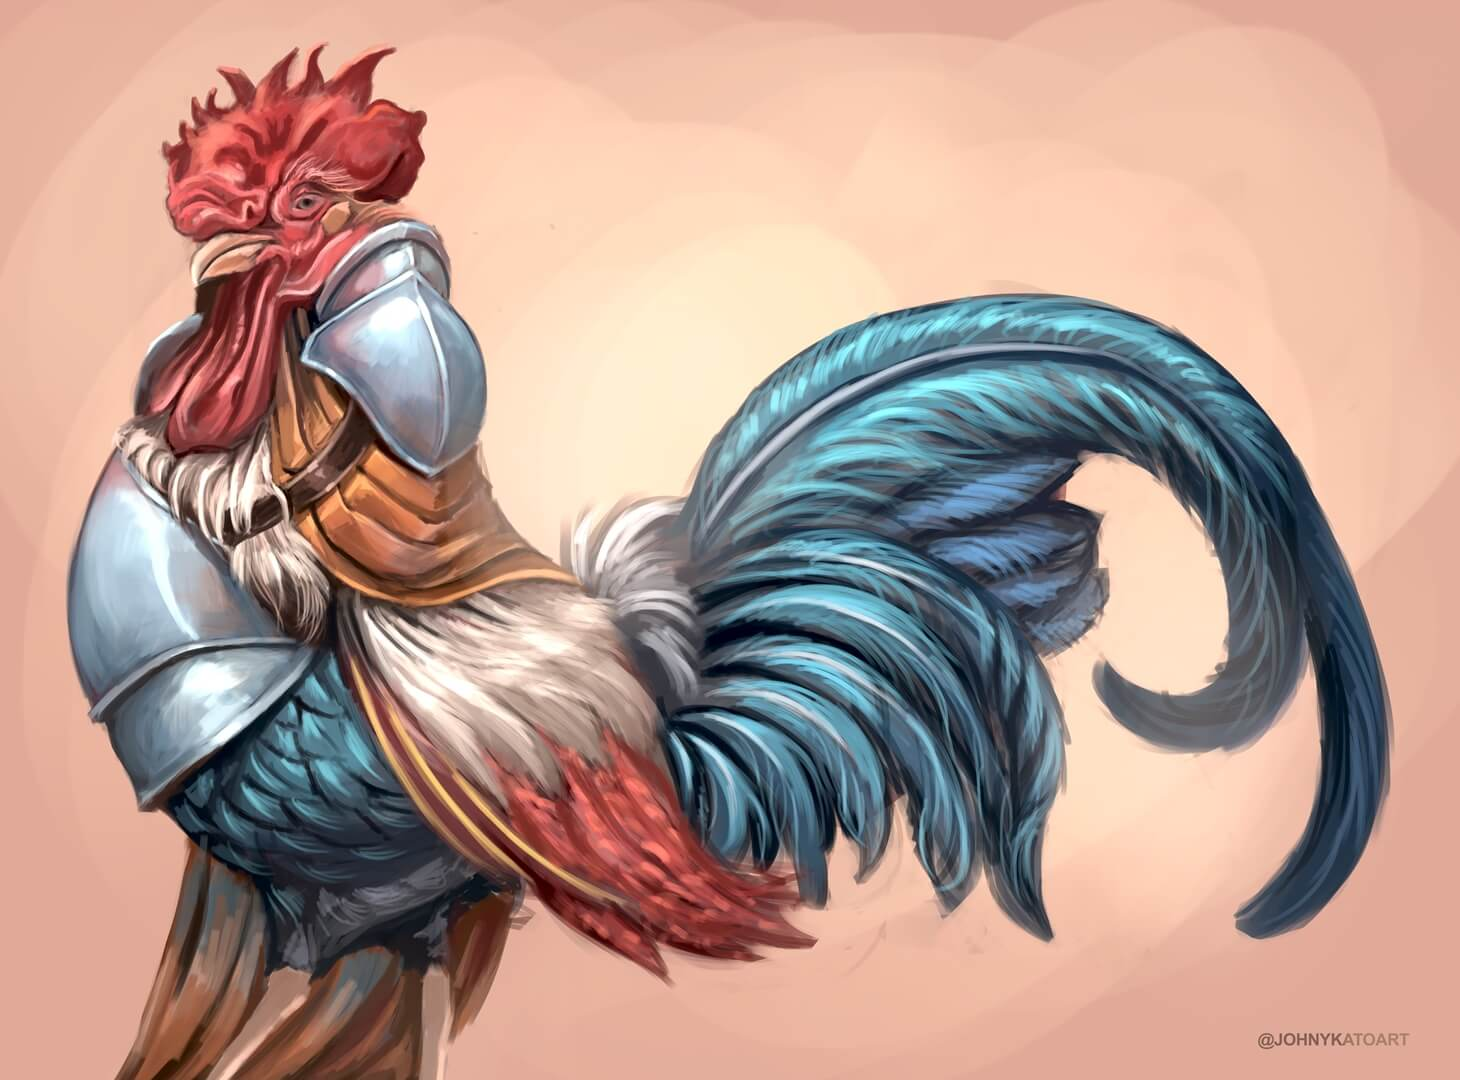 ArtCorgi - Pet and animal portraits by JohnyKatoArt featuring a rooster with armor